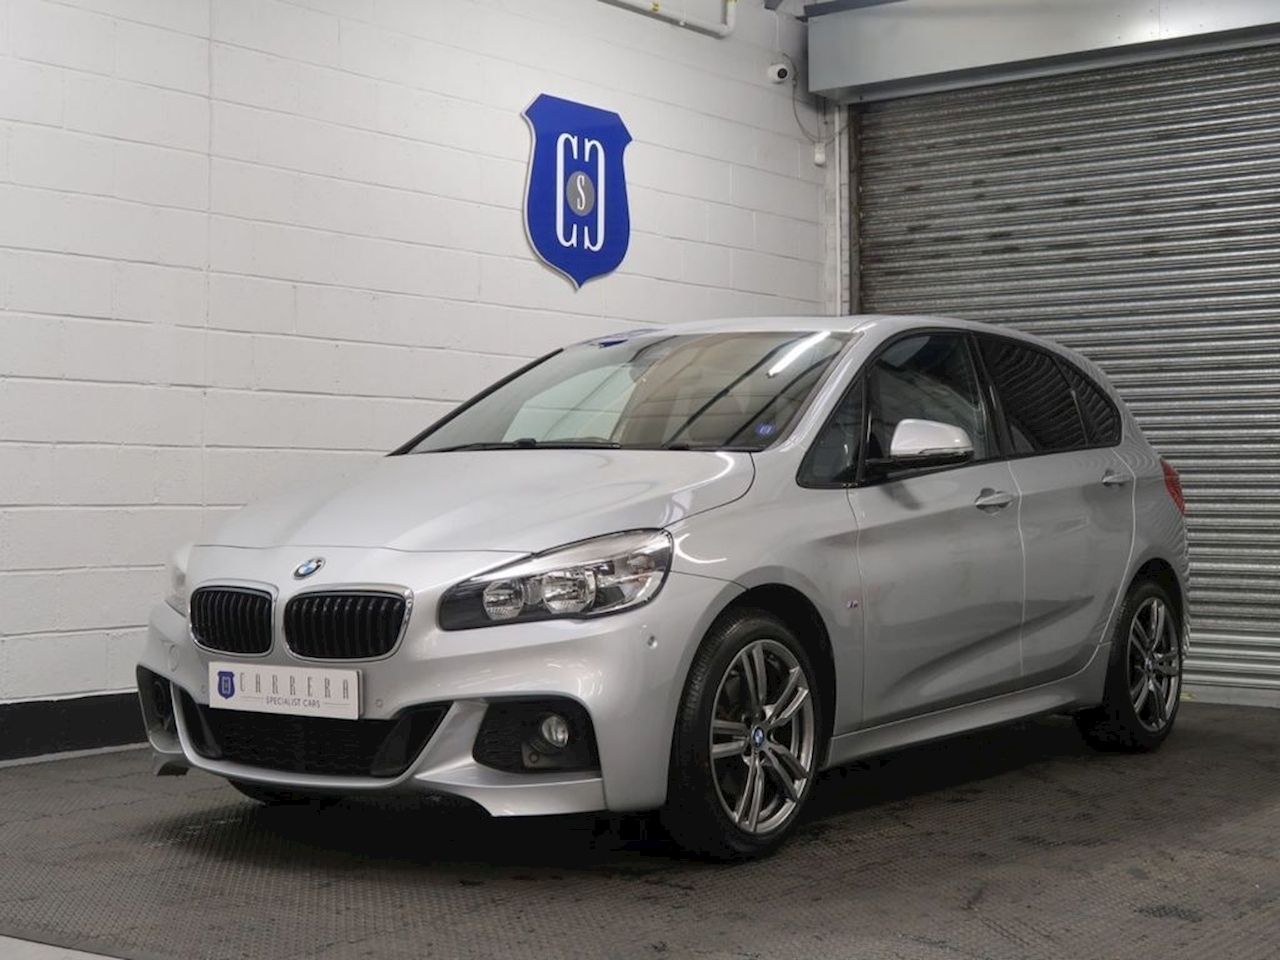 BMW 2 Series 220D Xdrive M Sport Active Tourer Hatchback 2.0 Automatic Diesel